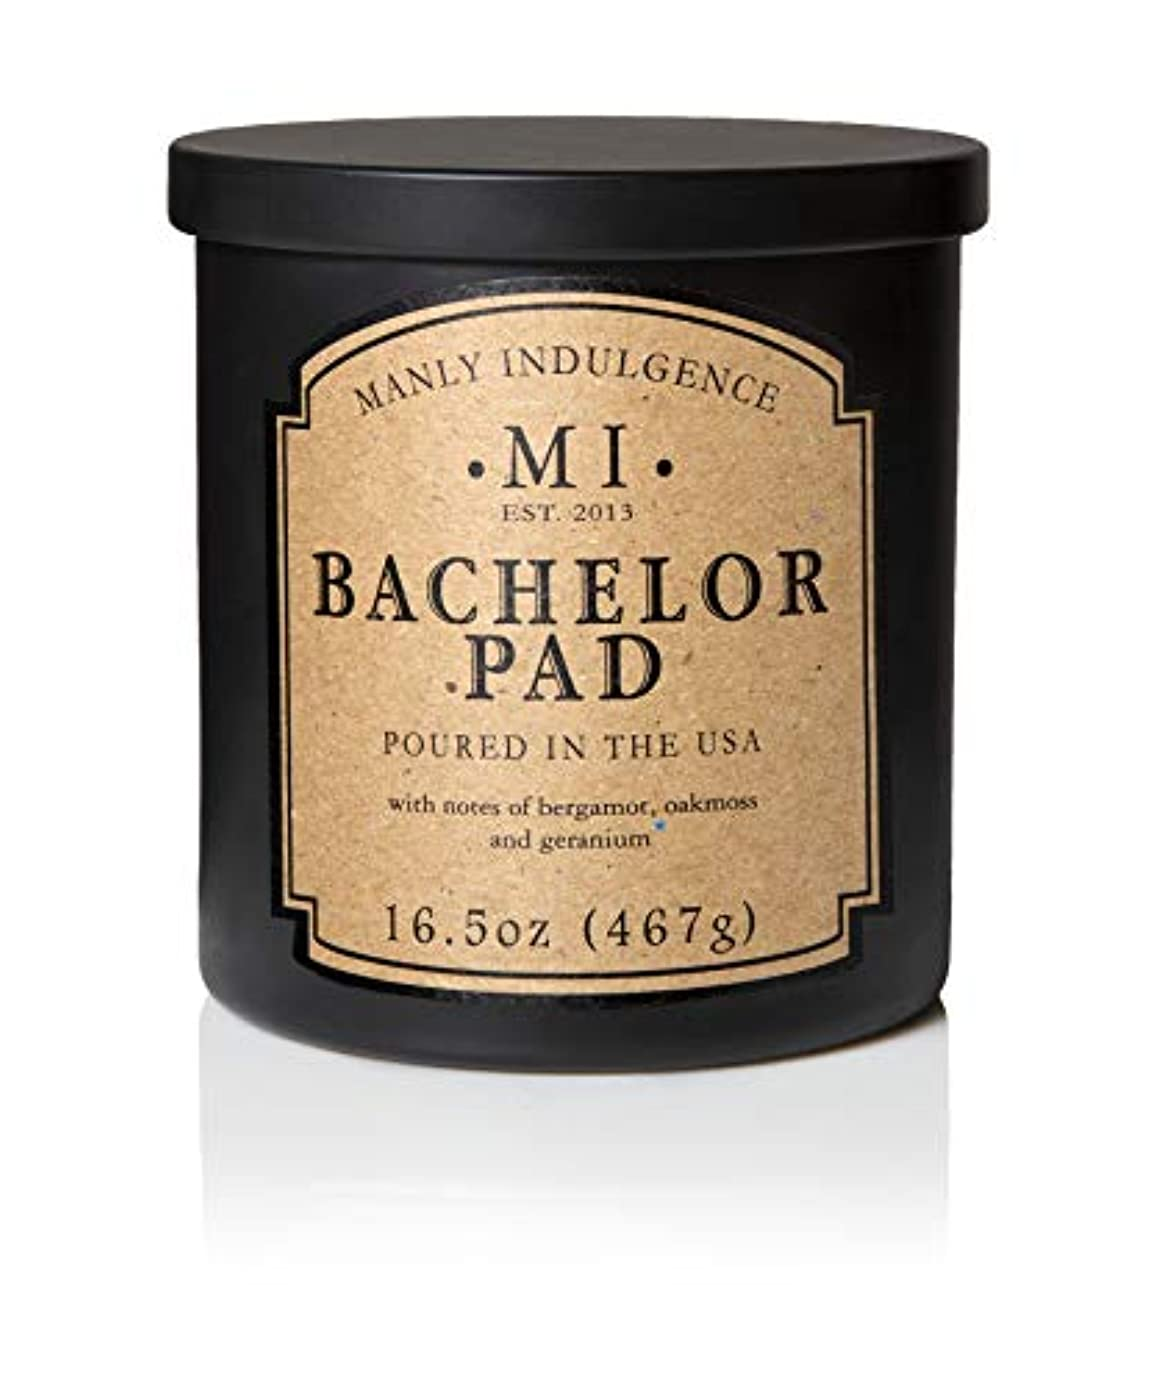 発生するパブ句Manly Indulgence Bachelor Pad Scented Candle - 1 Wick - 16.5 Oz. by Decoware